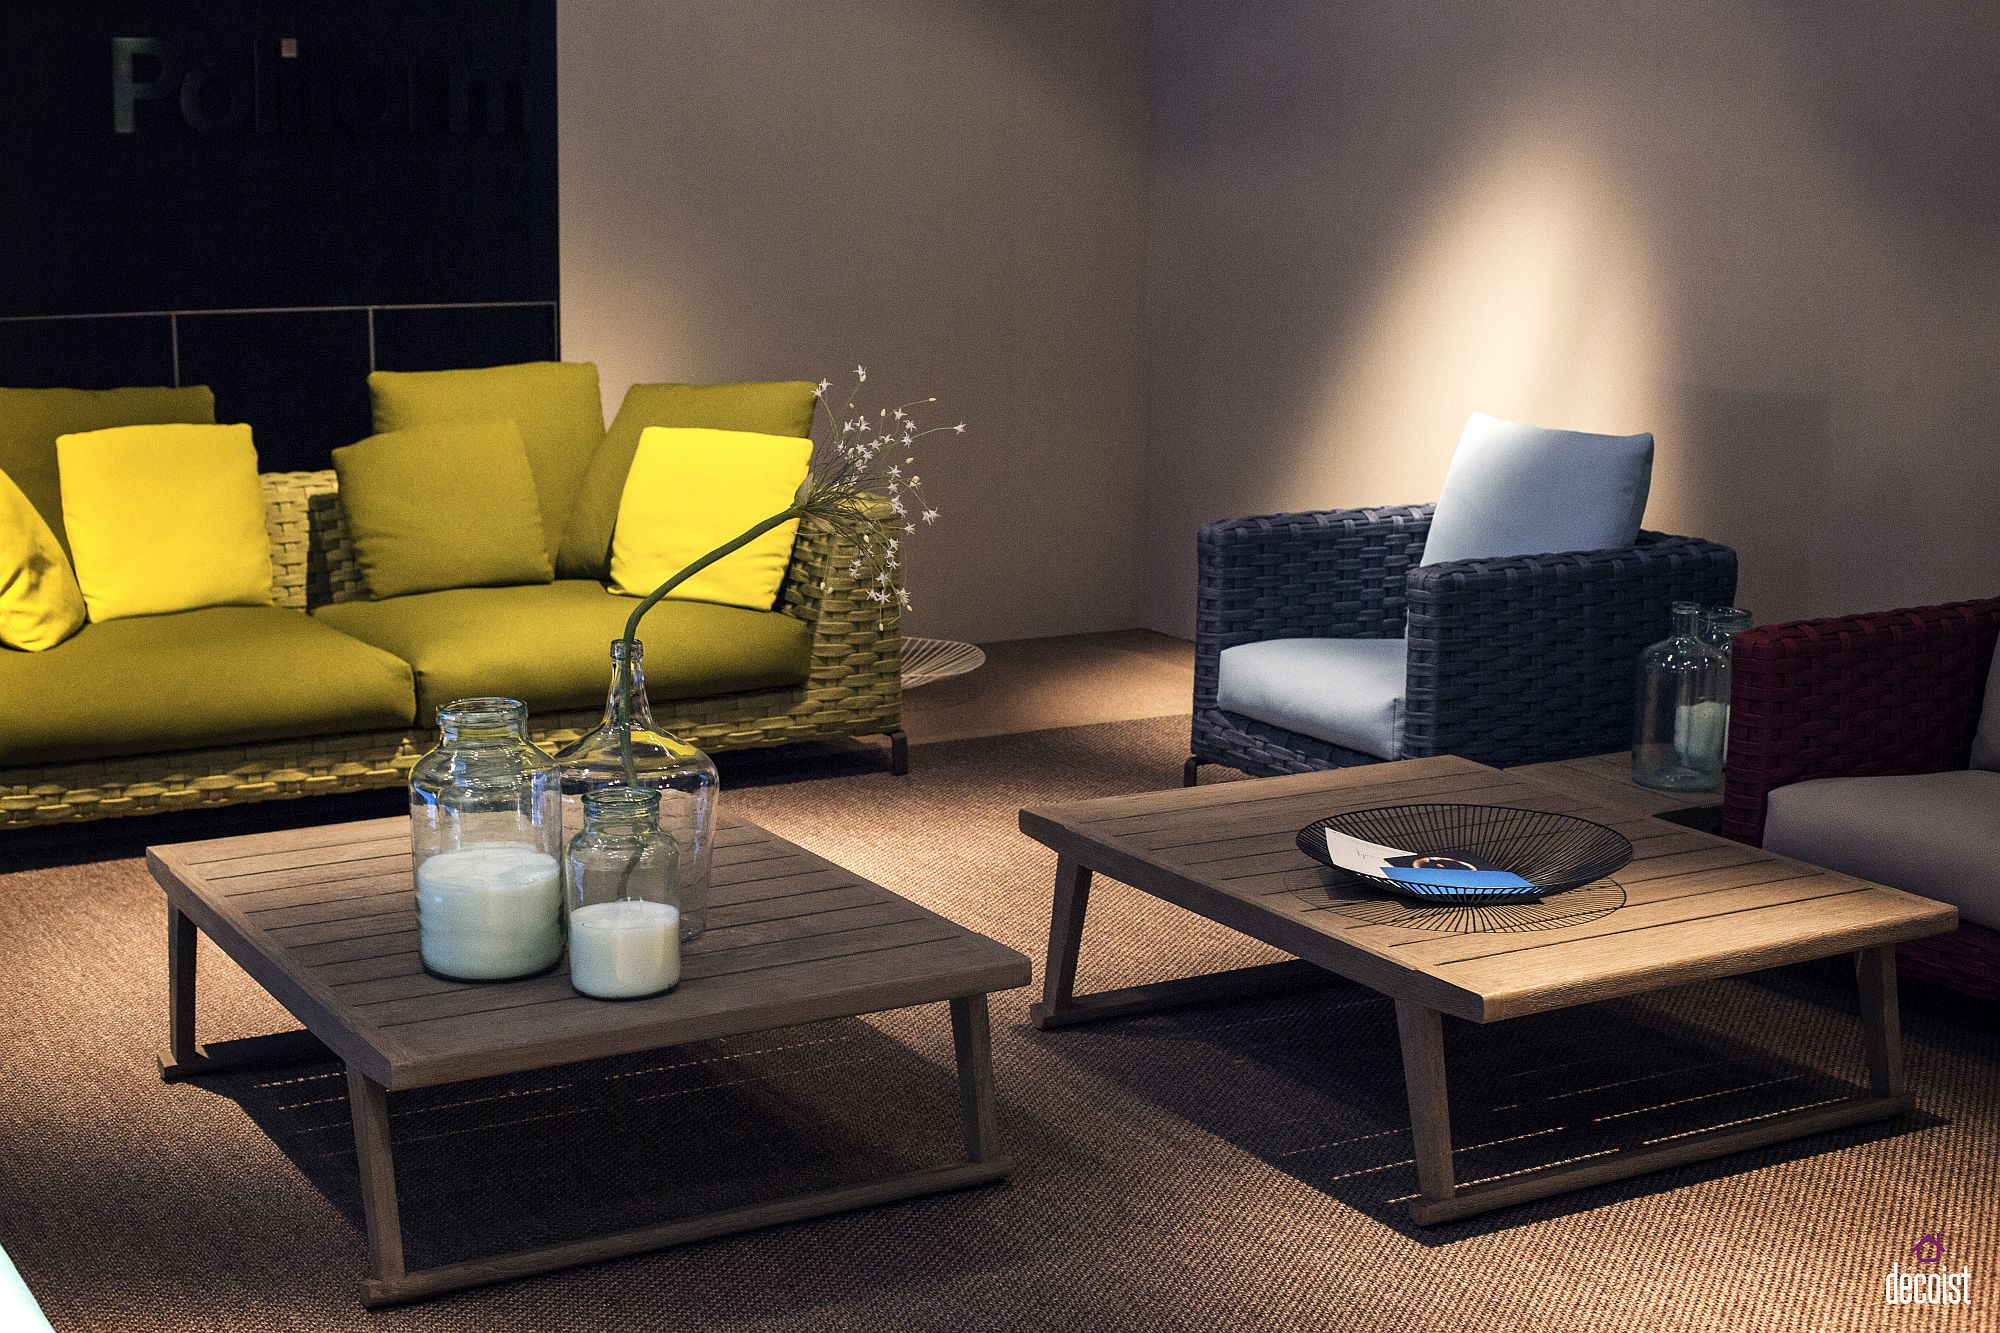 Ingenious sofa in yellow is he perfect way to give the living room a cheerful focal point